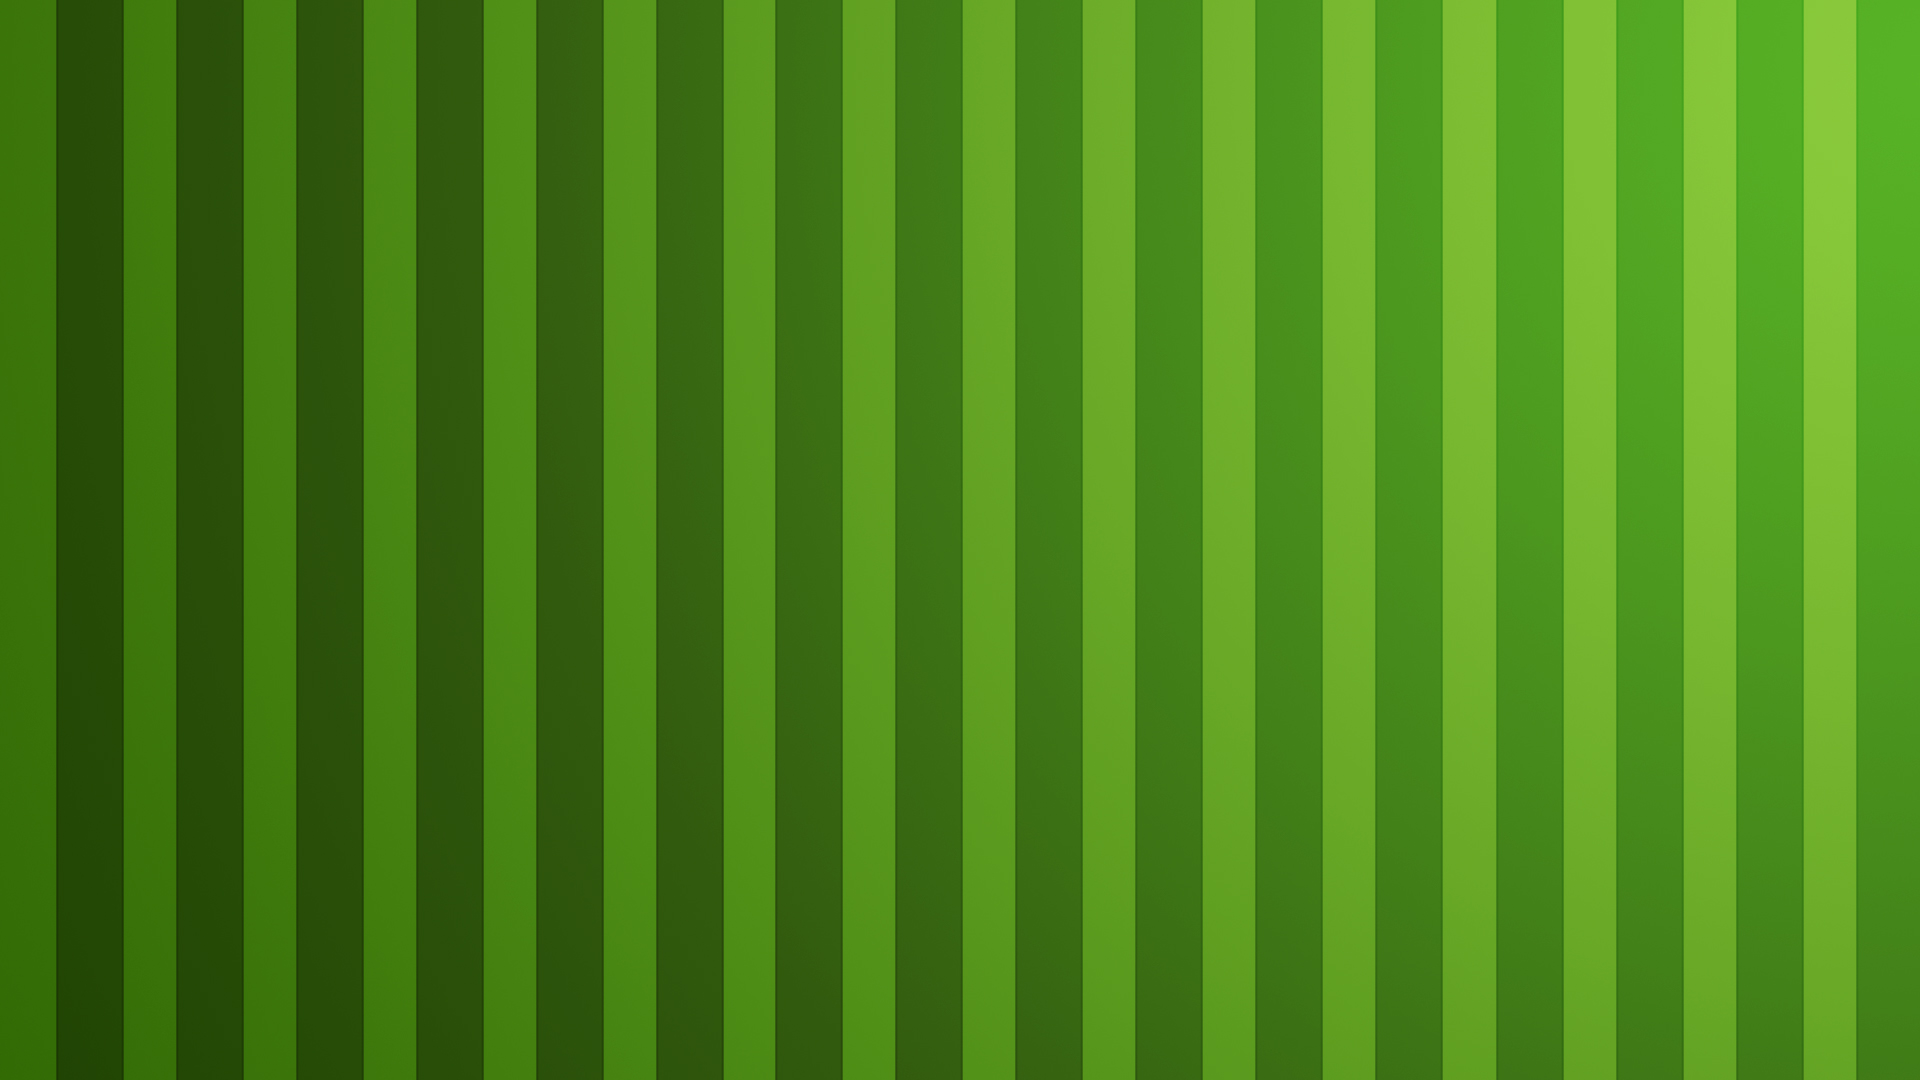 1920x1080 cool green stripes - photo #11